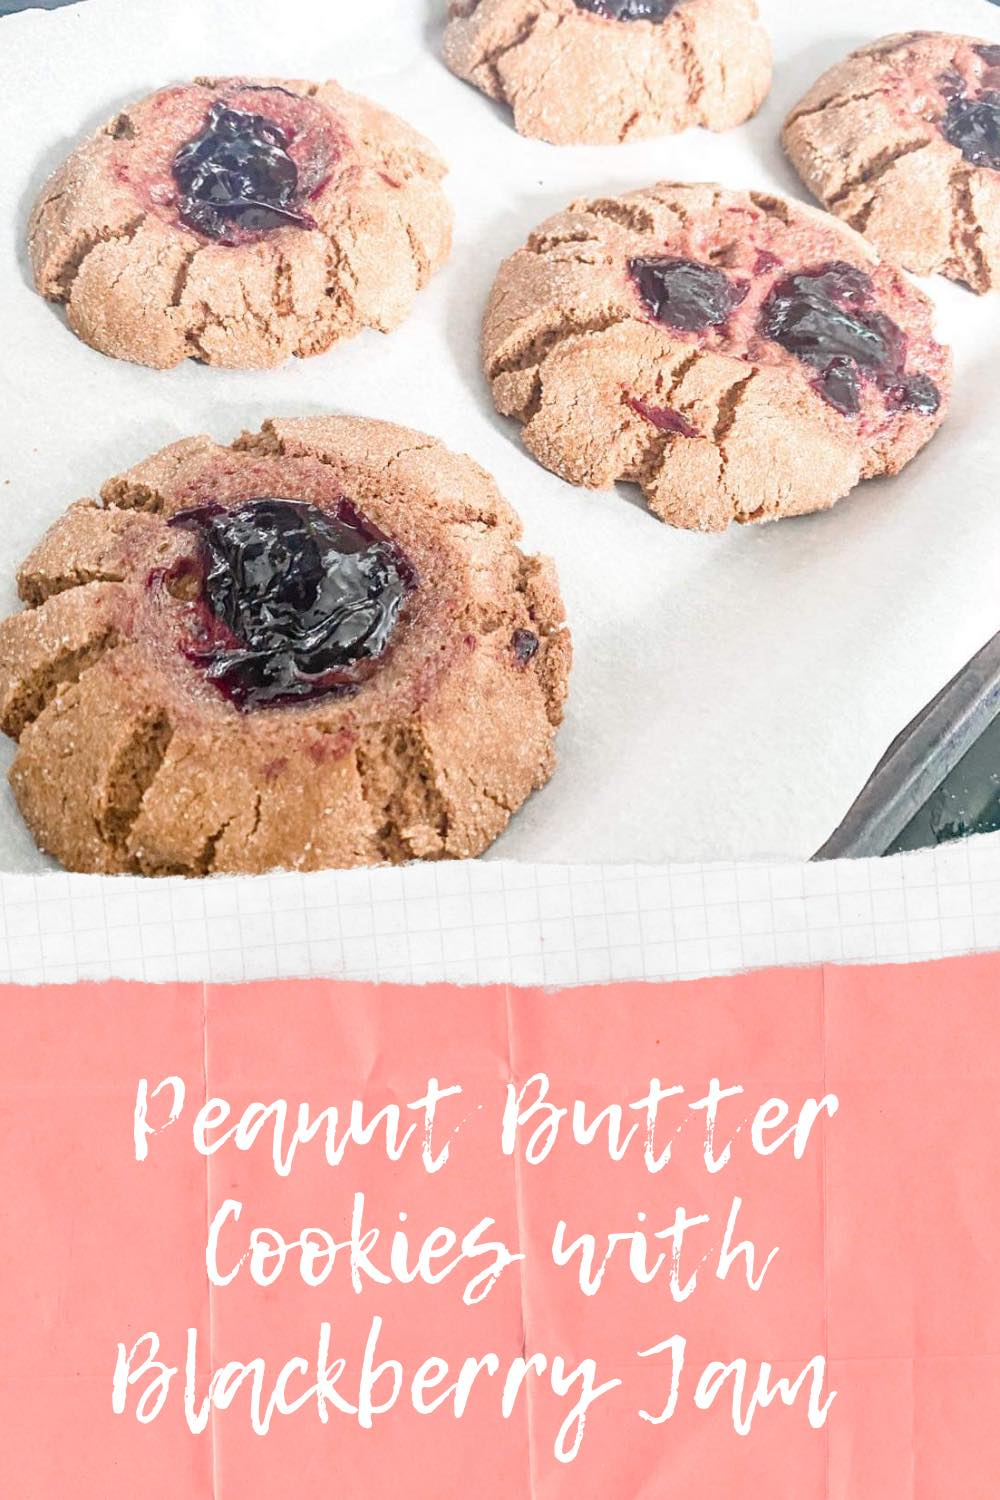 How to Make Peanut Butter Cookies with Blackberry Jam